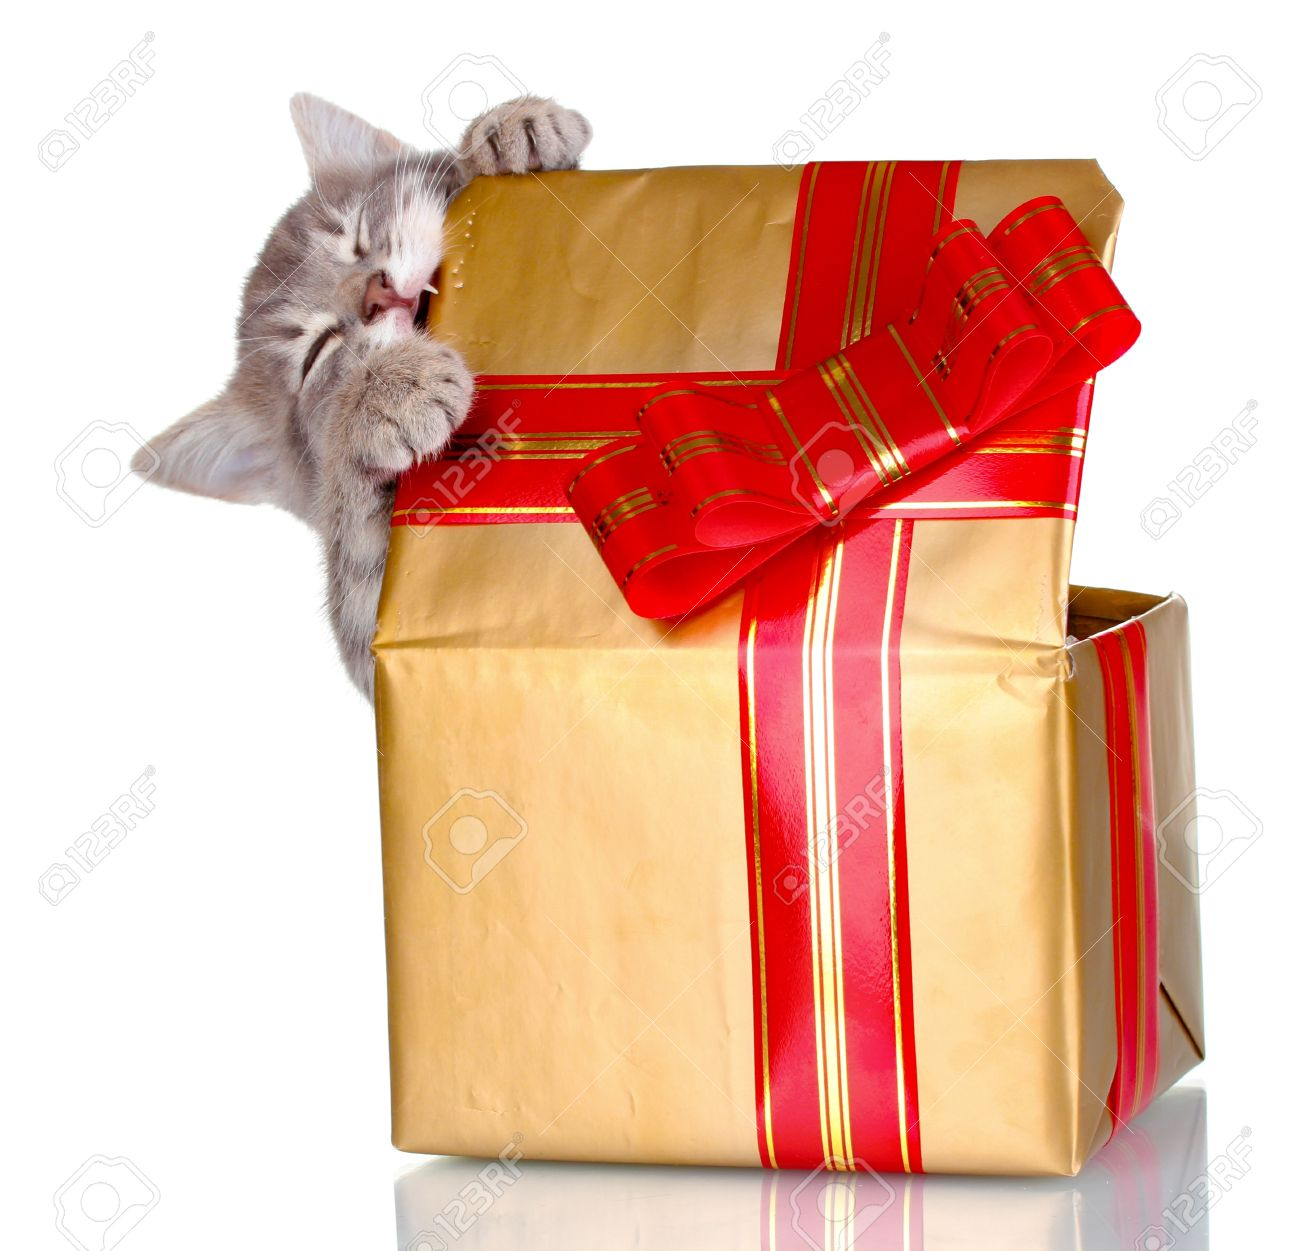 Image result for cat gifts